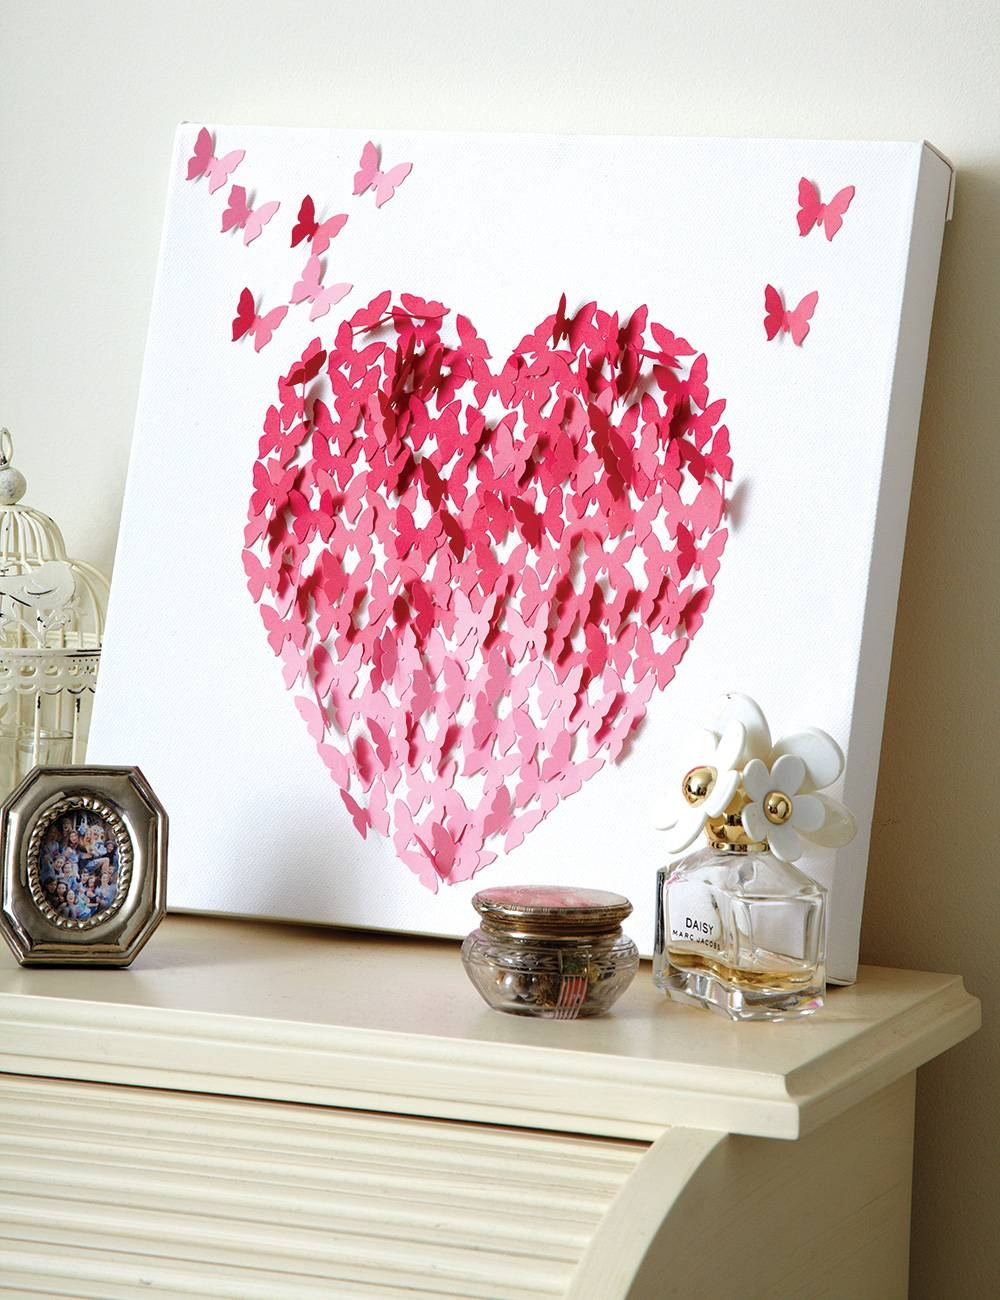 Make Love Heart Canvas Wall Art For Valentine's Day Regarding Most Recently Released Heart 3d Wall Art (View 7 of 20)